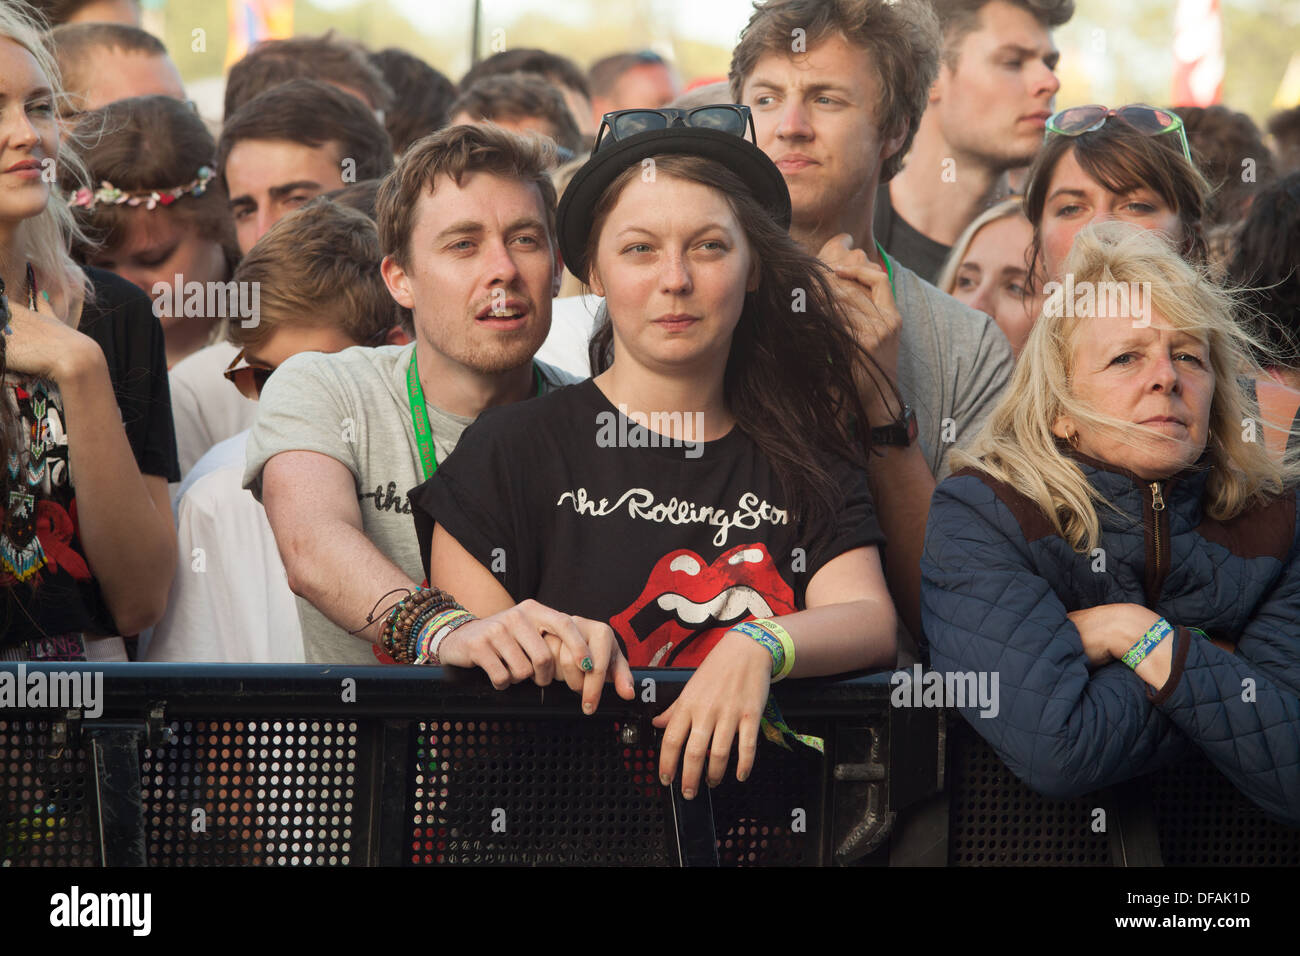 Fans waiting to watch the Rolling Stones headline Glastonbury Festival, Worthy Farm, Somerset, England, United Kingdom. - Stock Image